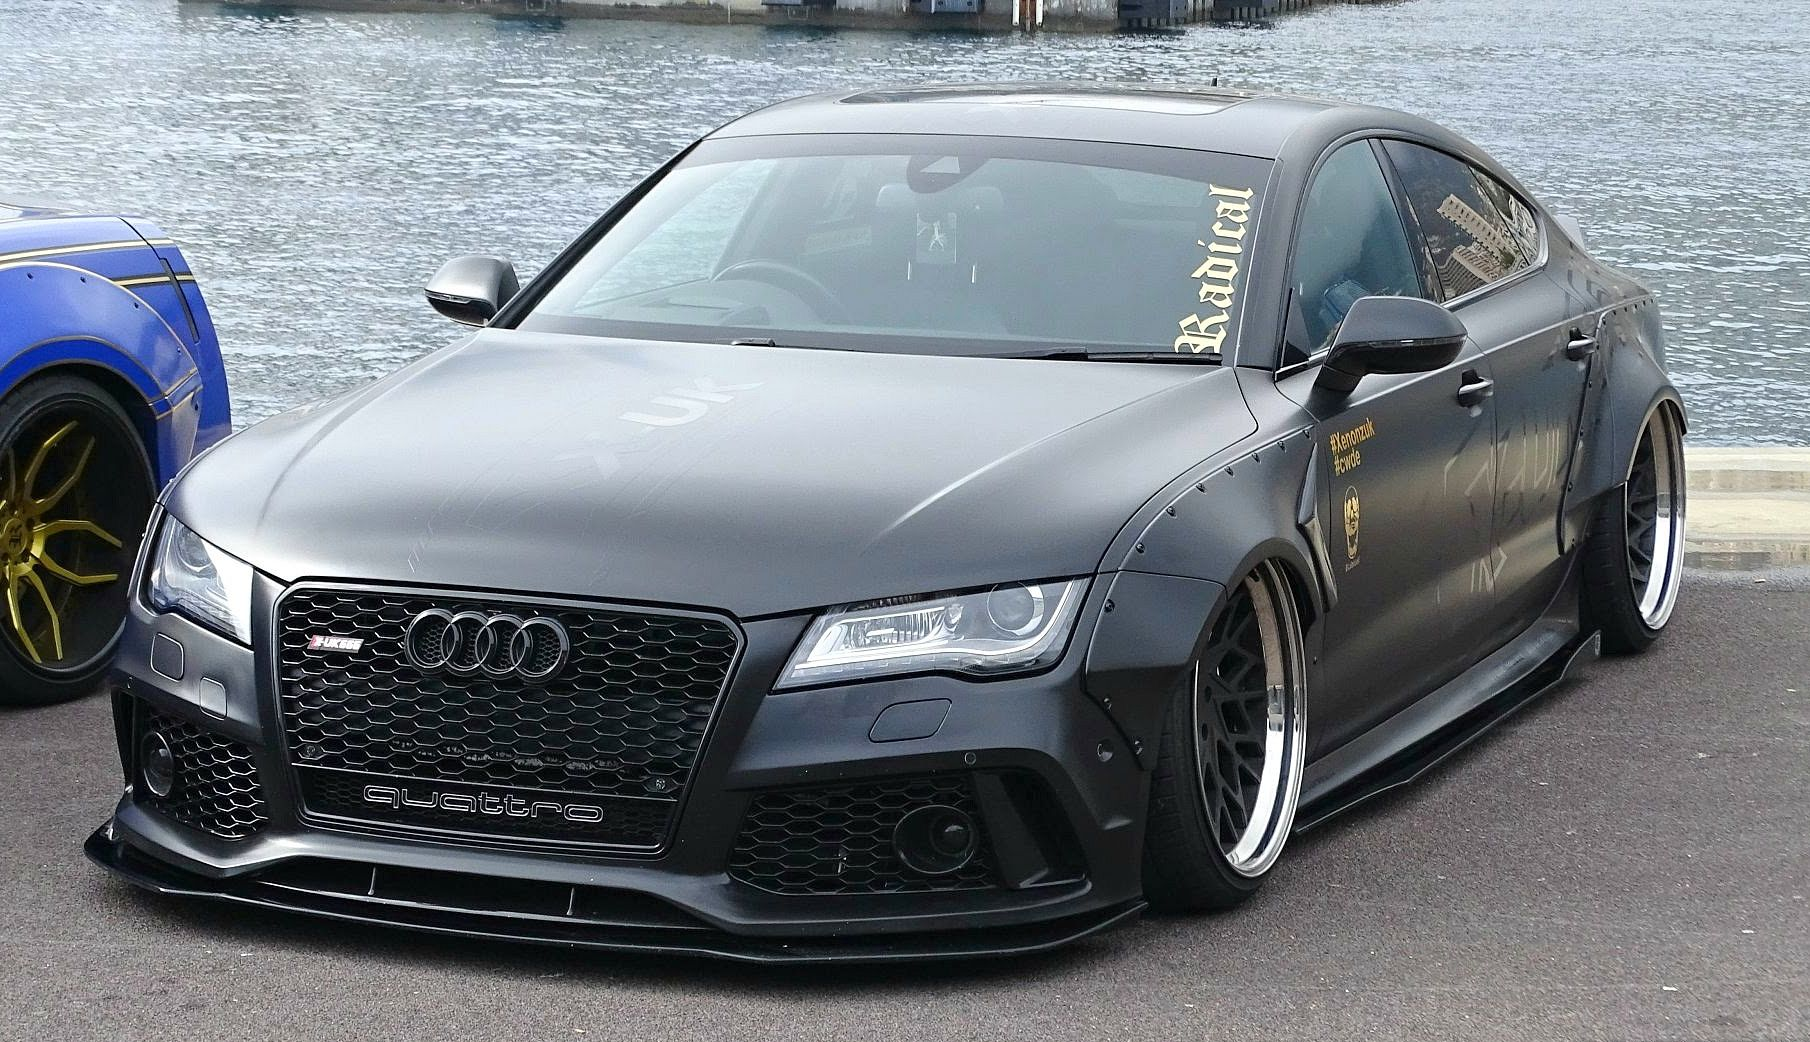 Insane Audi A7 3 0 TDI Widebody with a LOUD Exhaust!